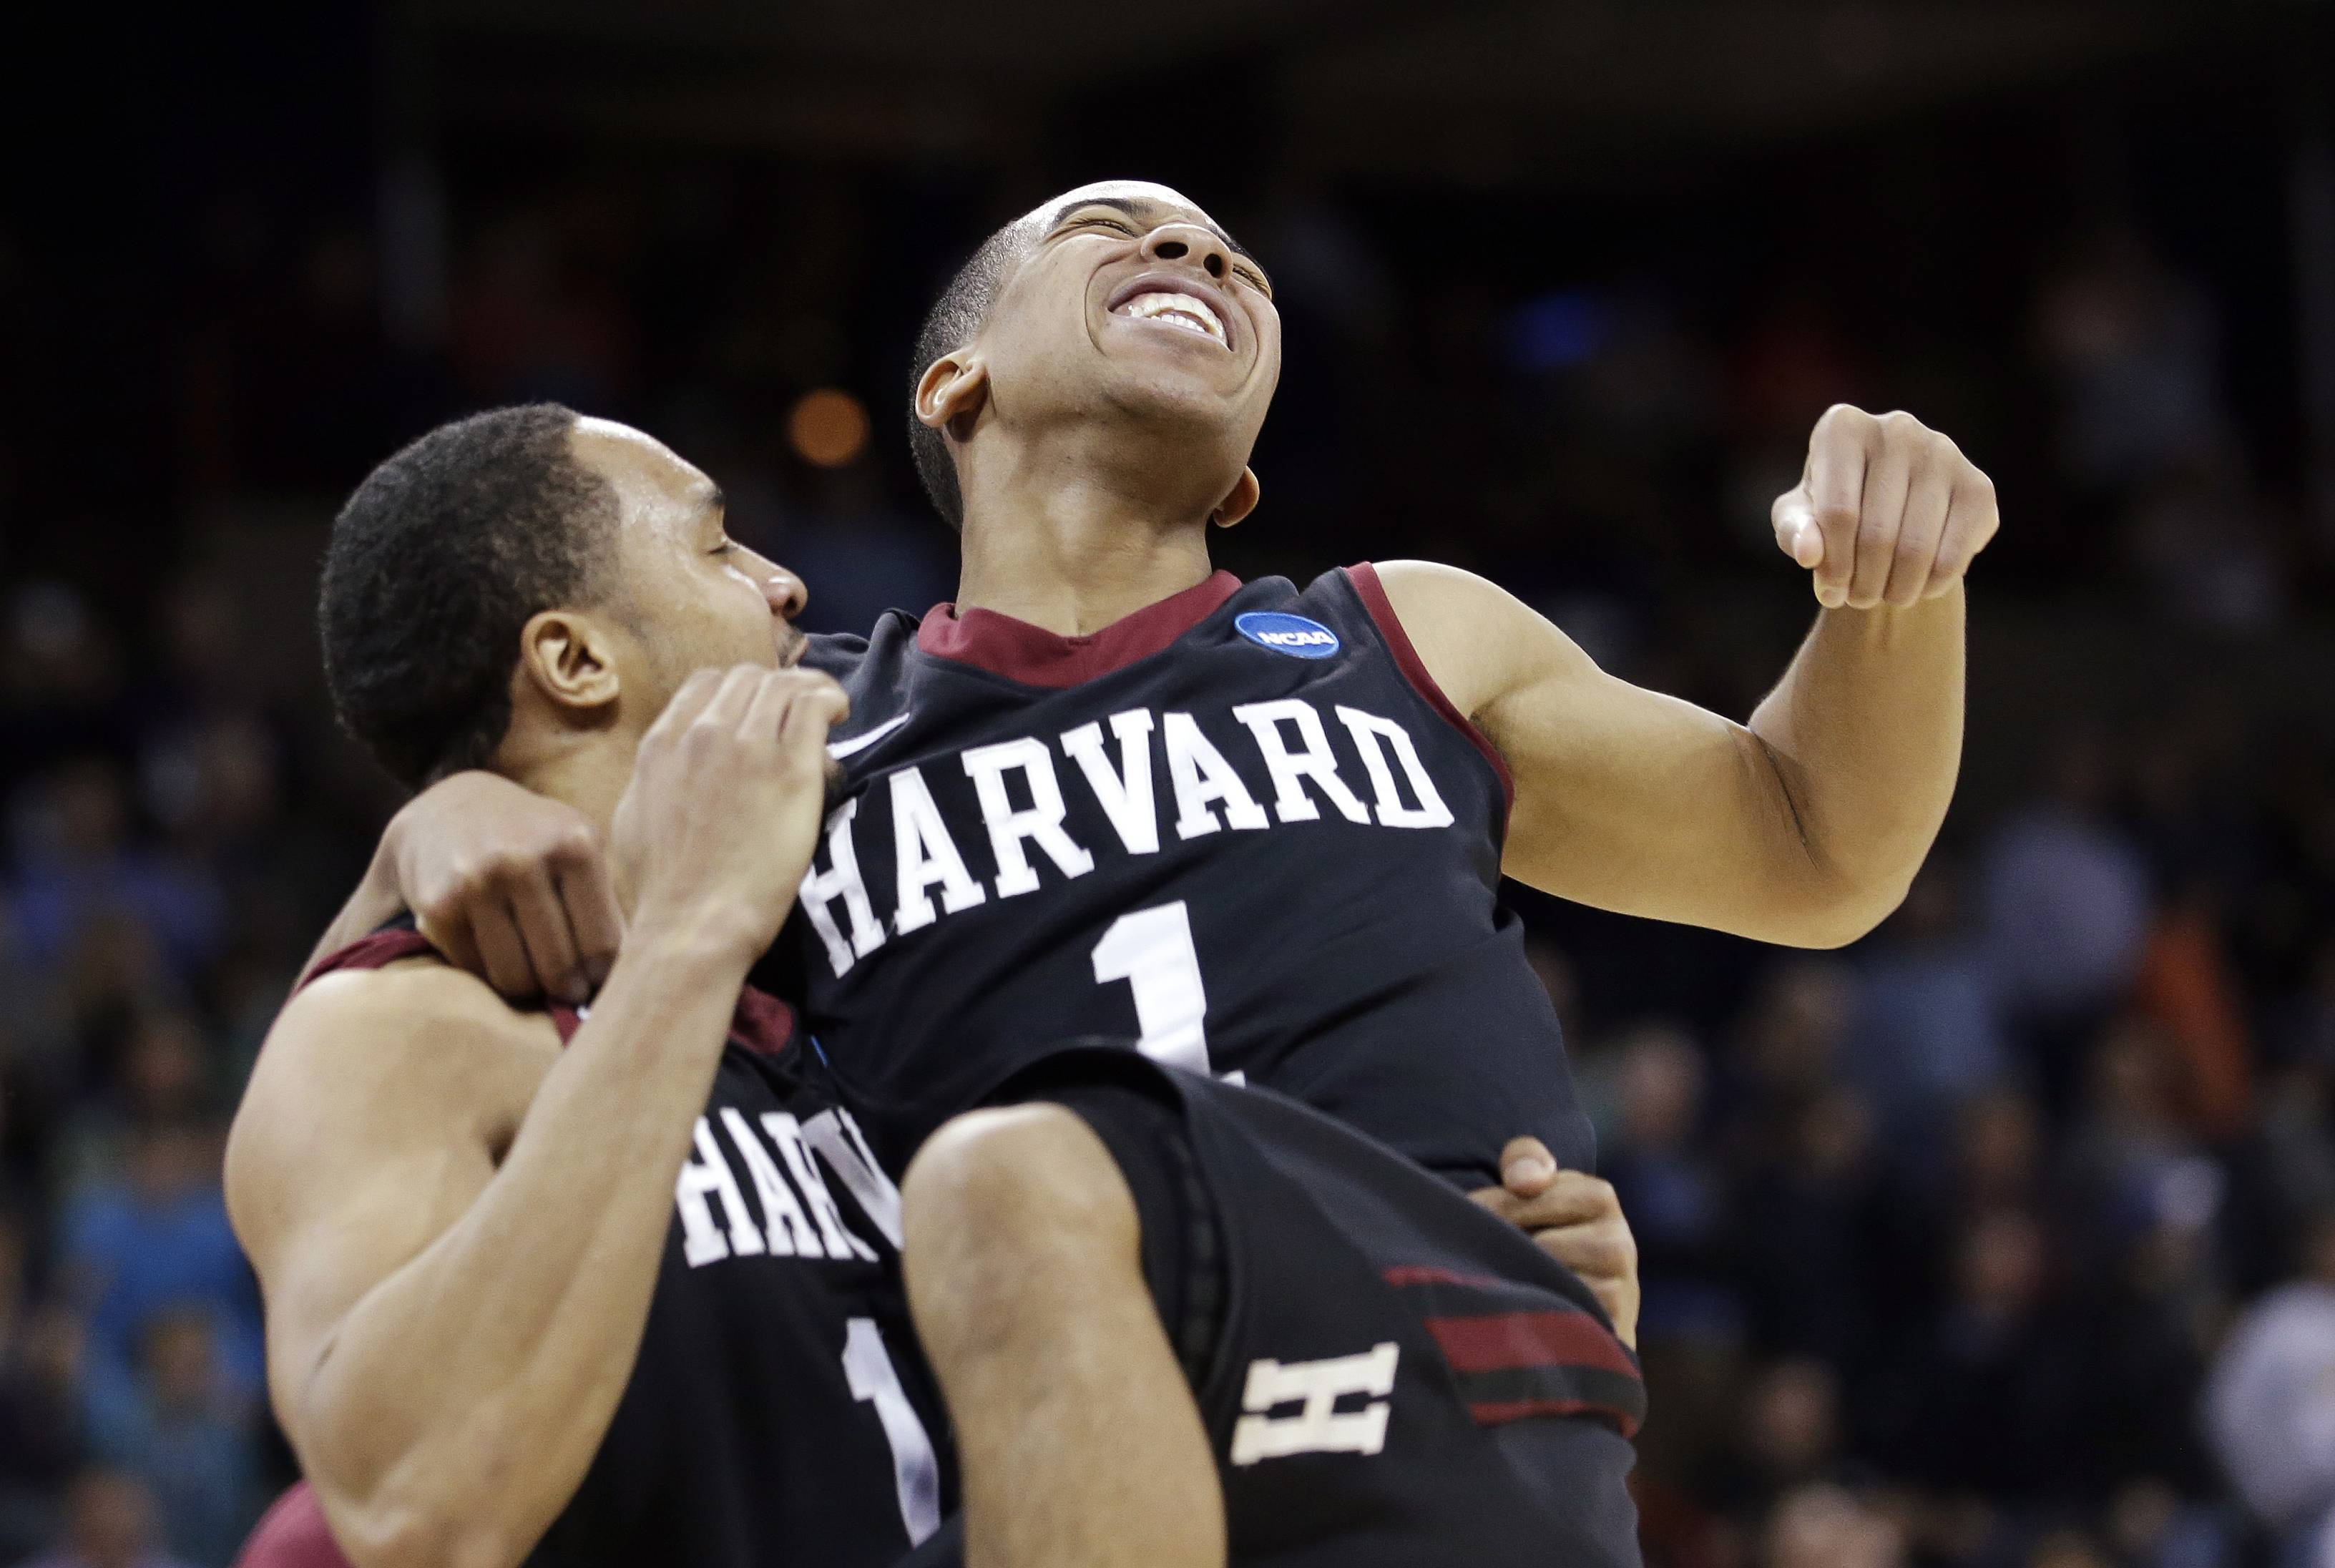 Harvard's Siyani Chambers, right, leaps into the arms of teammate Brandyn Curry after the team beat Cincinnati in the second round of the NCAA college basketball tournament in Spokane, Wash., Thursday, March 20, 2014. Harvard won 61-57.